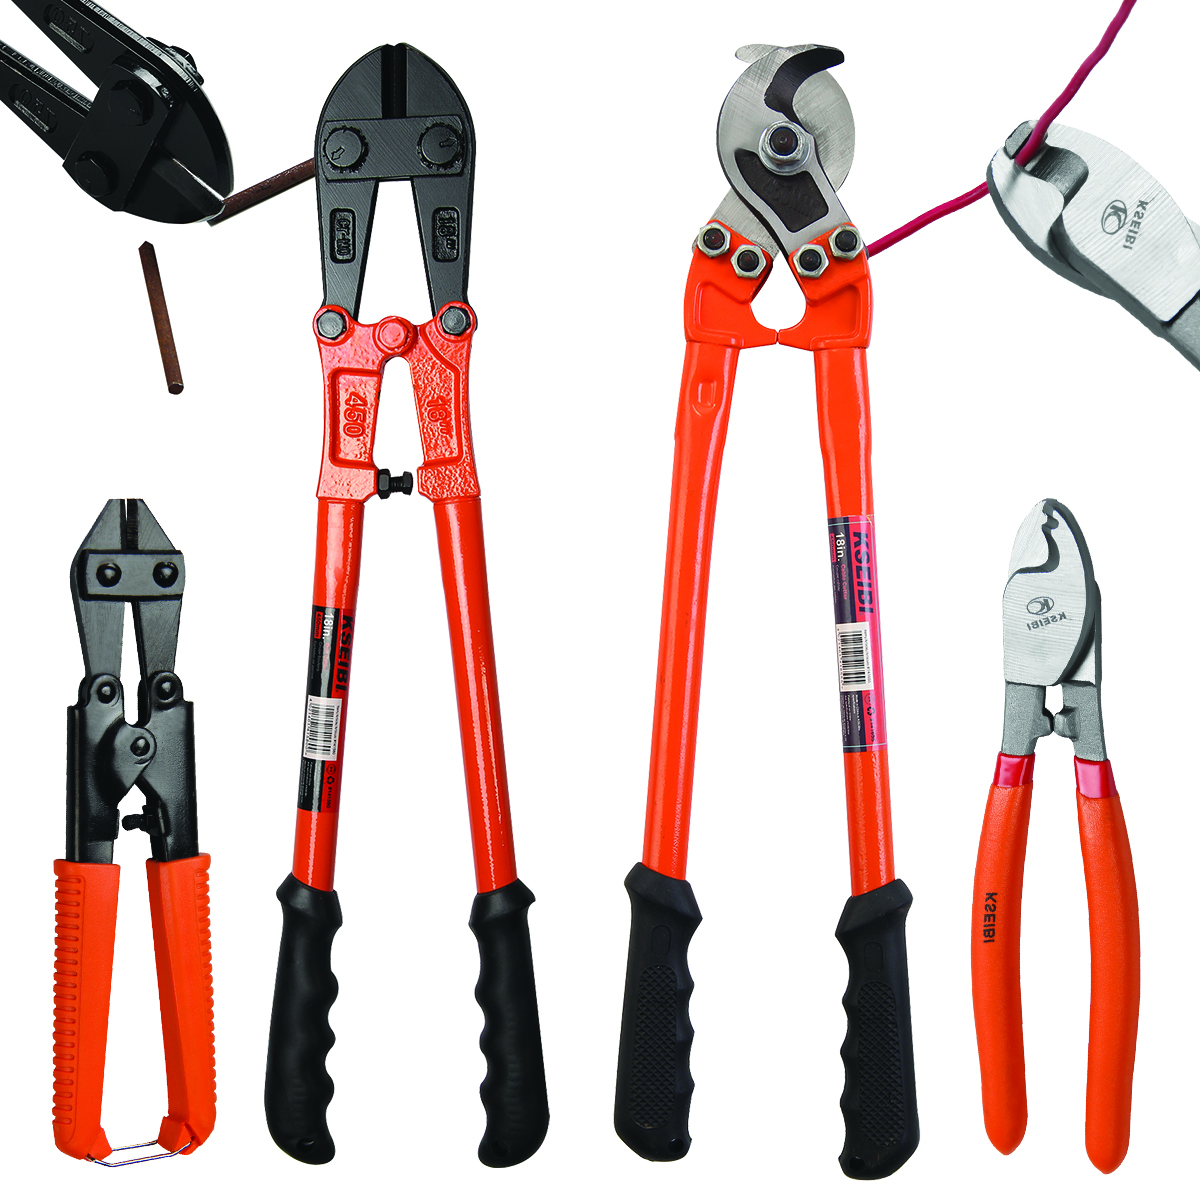 KSEIBI Bolt Cutter Wire Cable Cutting Copper Screw Cutting 6 In - 8 In - 18 In - 24 In - 30in - 32 In Large Heavy Duty Standard